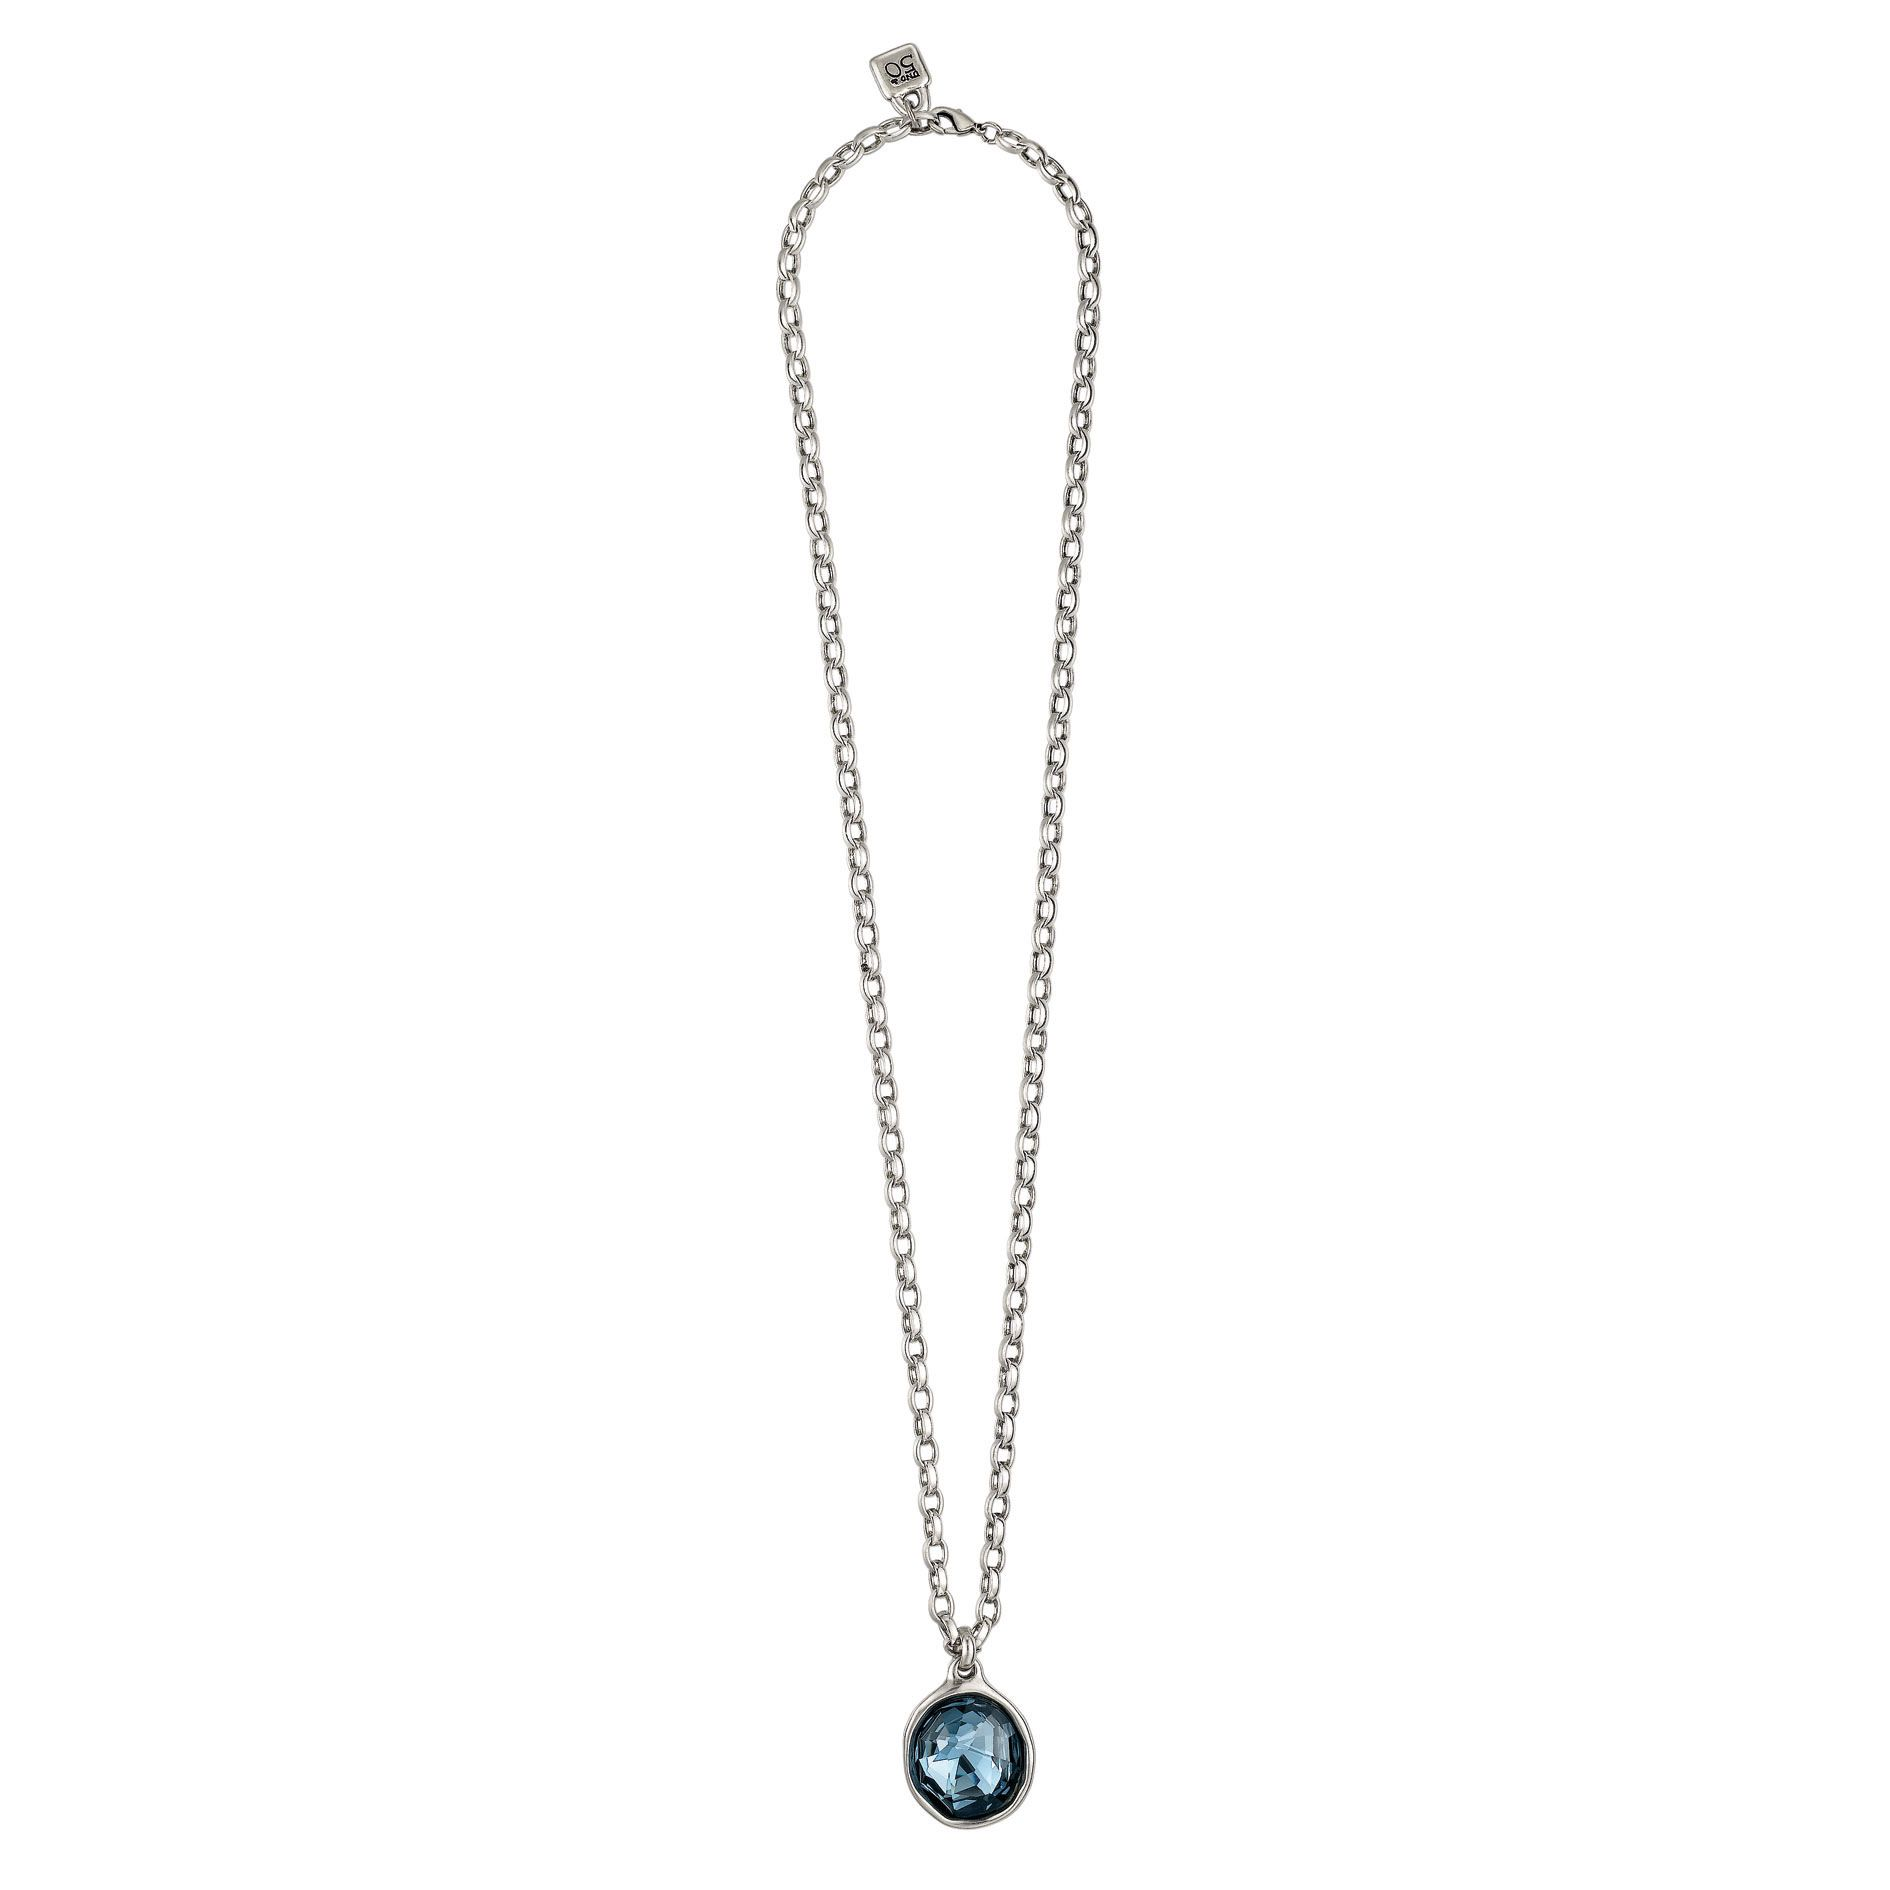 Uno de long chain link necklace with a large round geometric